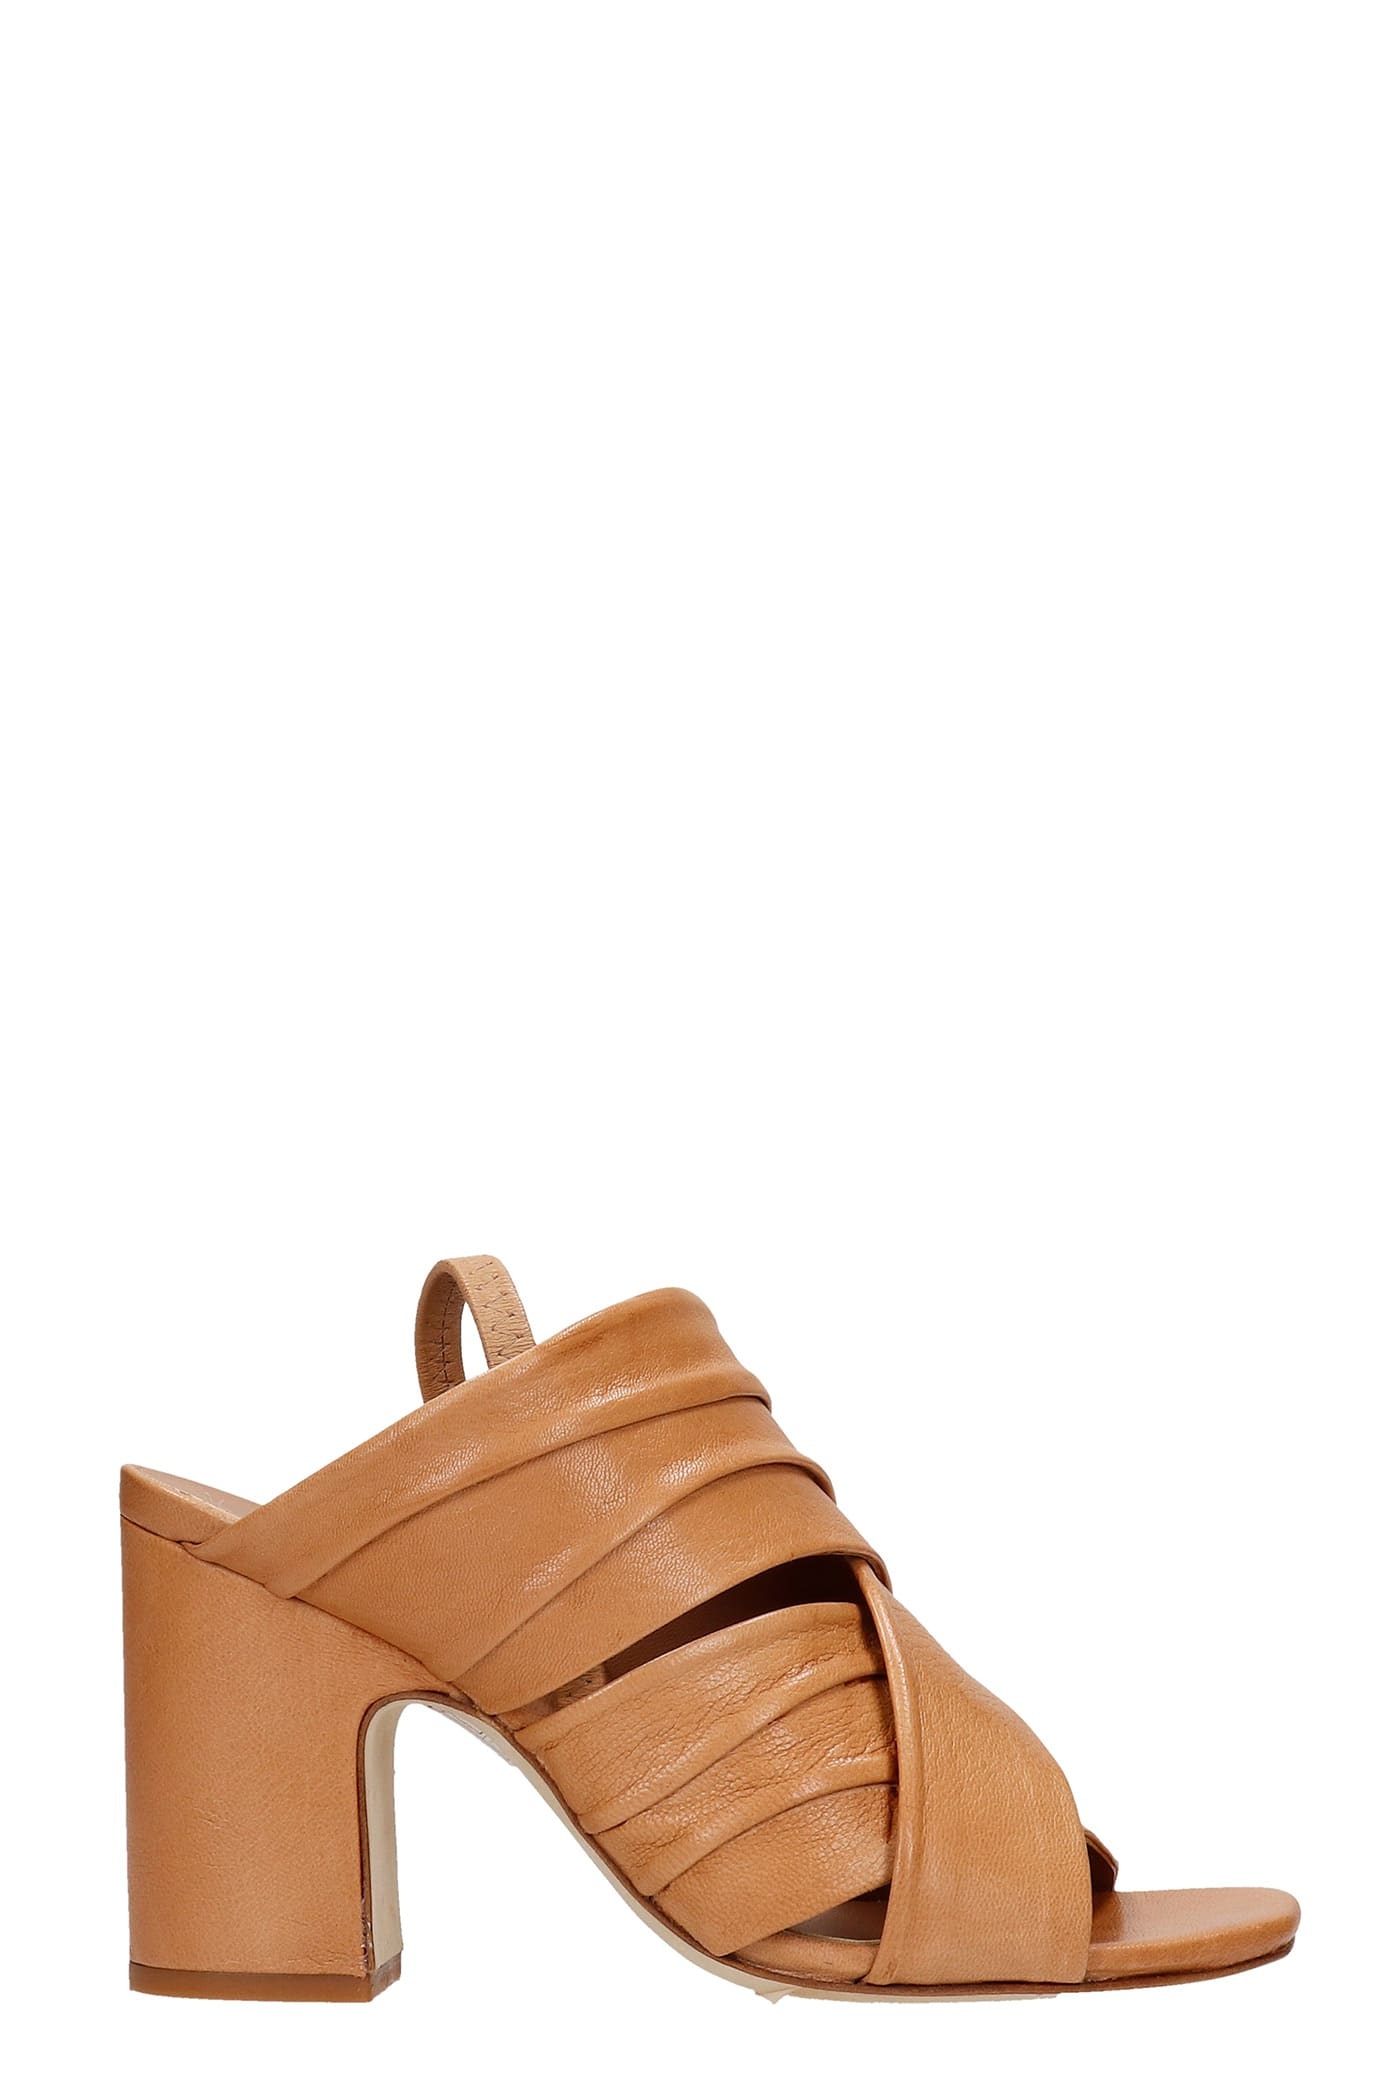 Sandals In Leather Color Leather